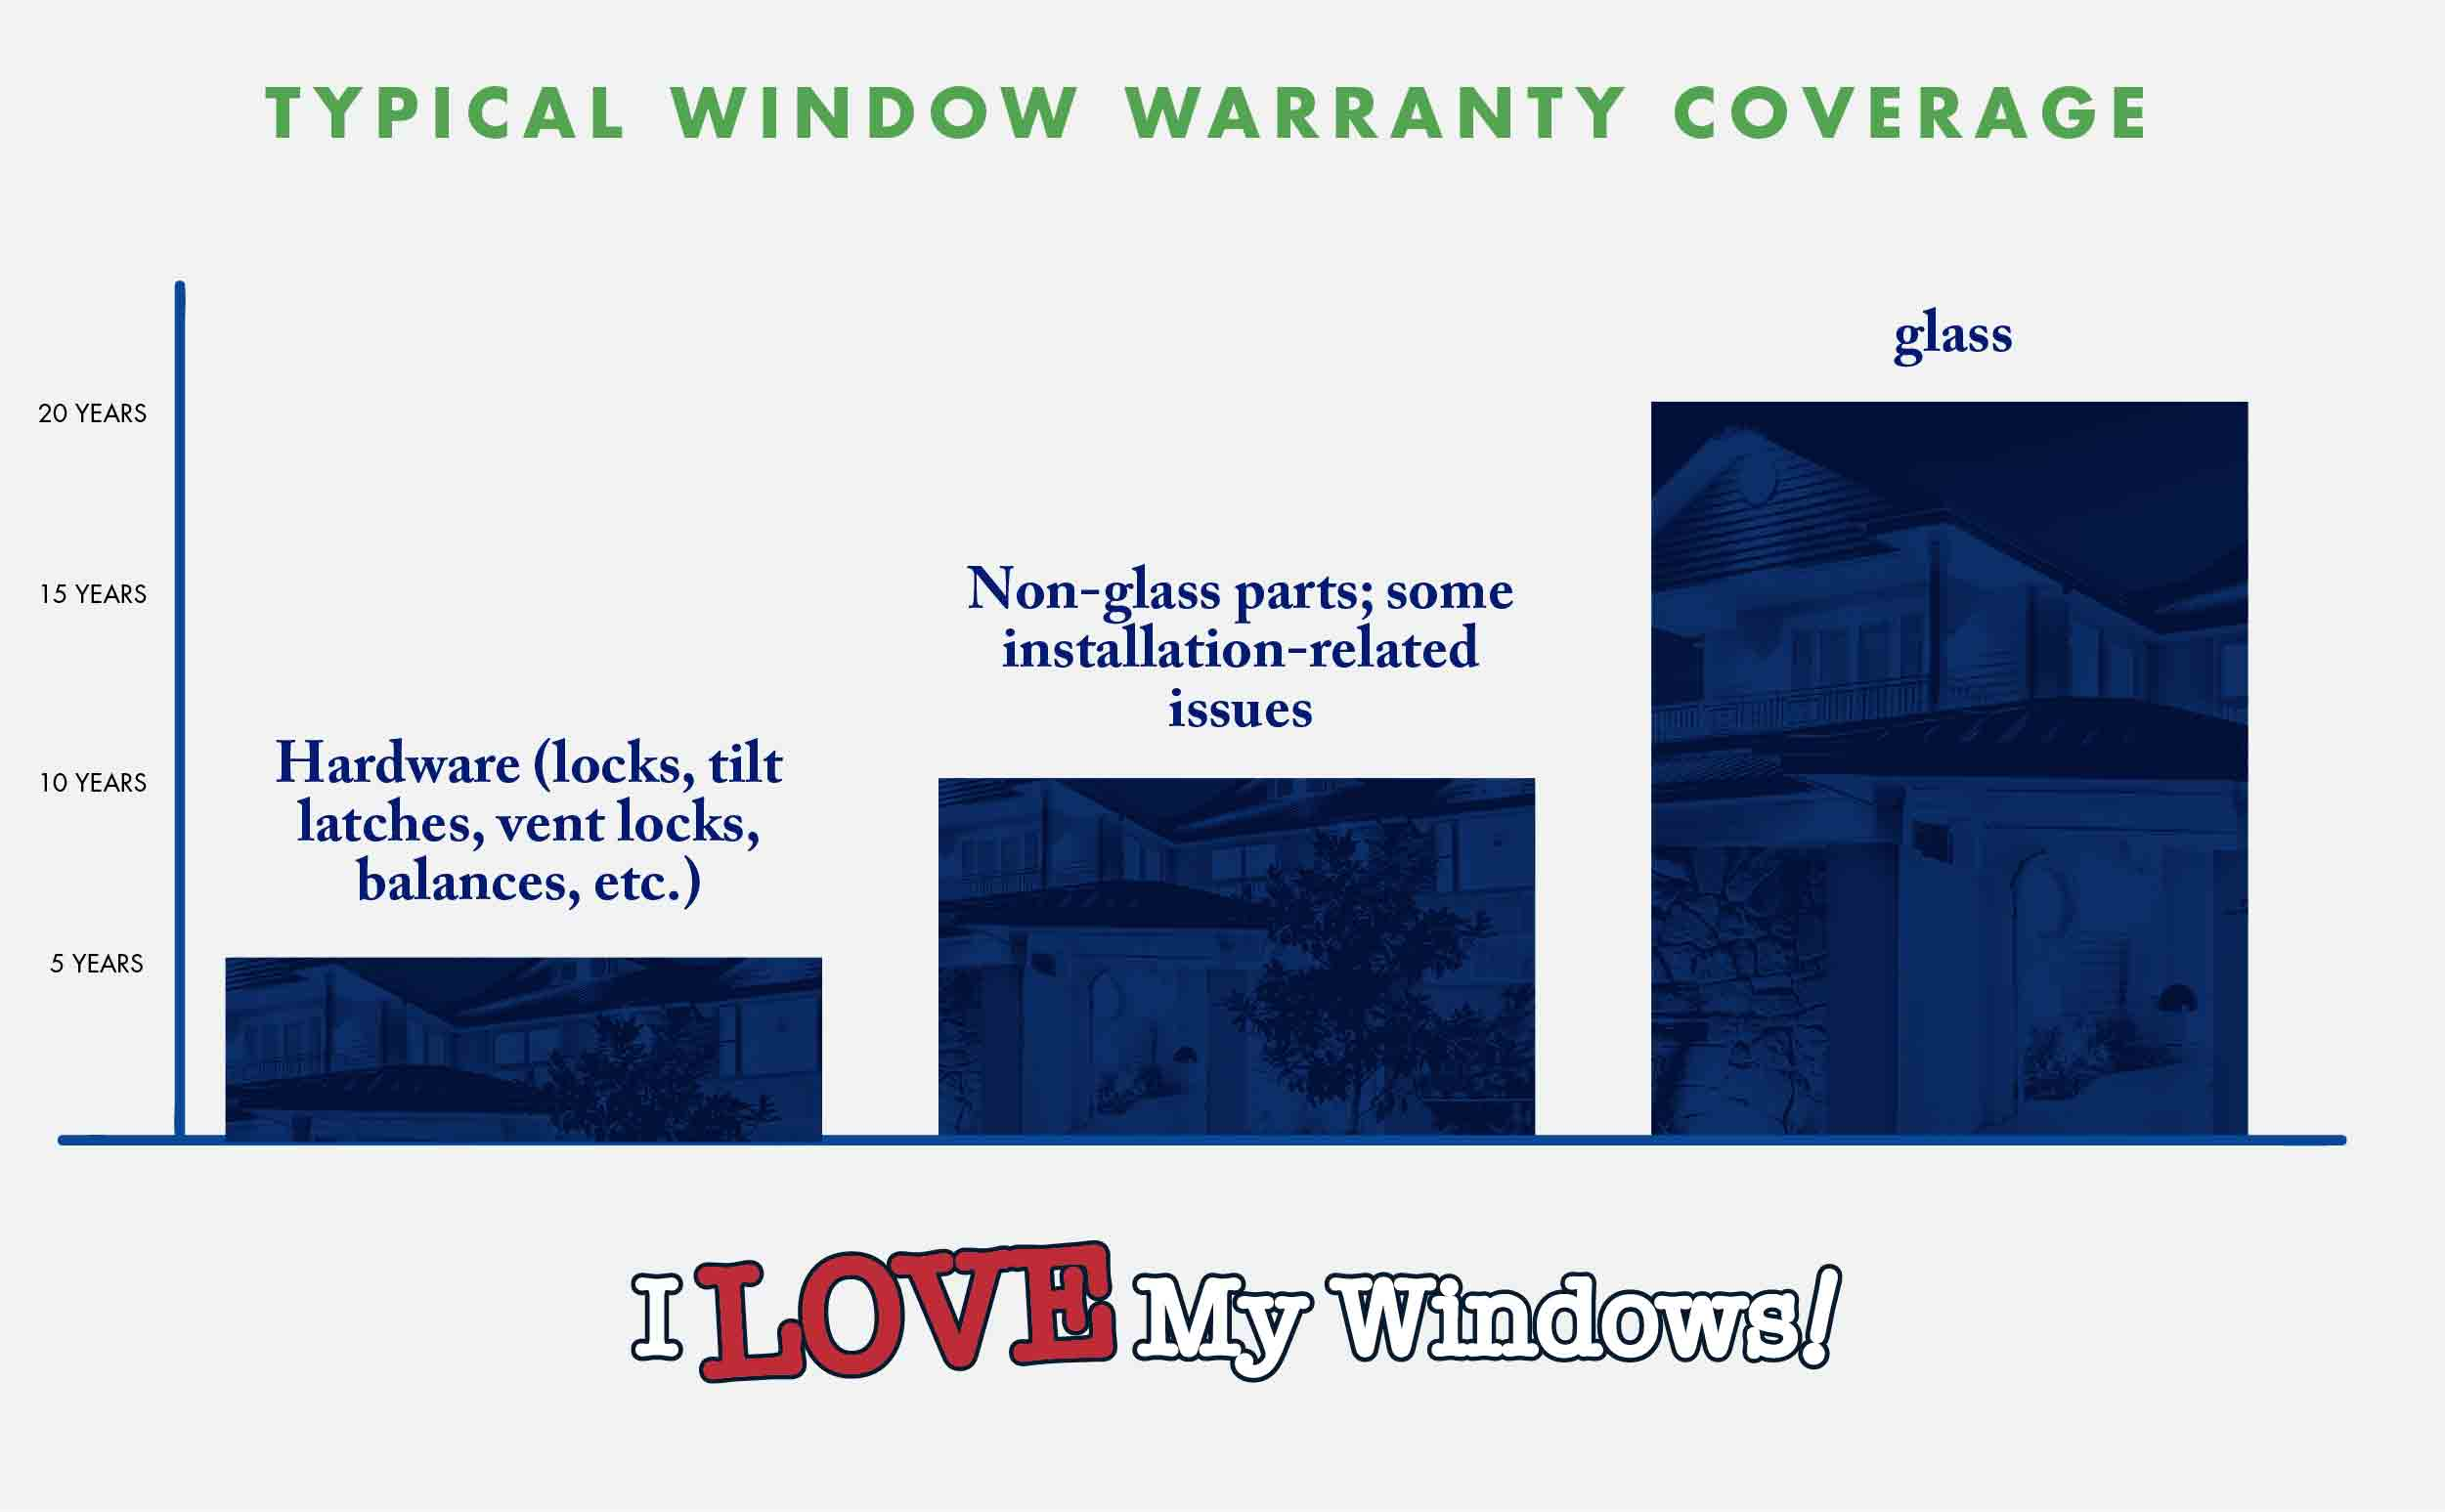 Typical warranty cover on replacement window materials